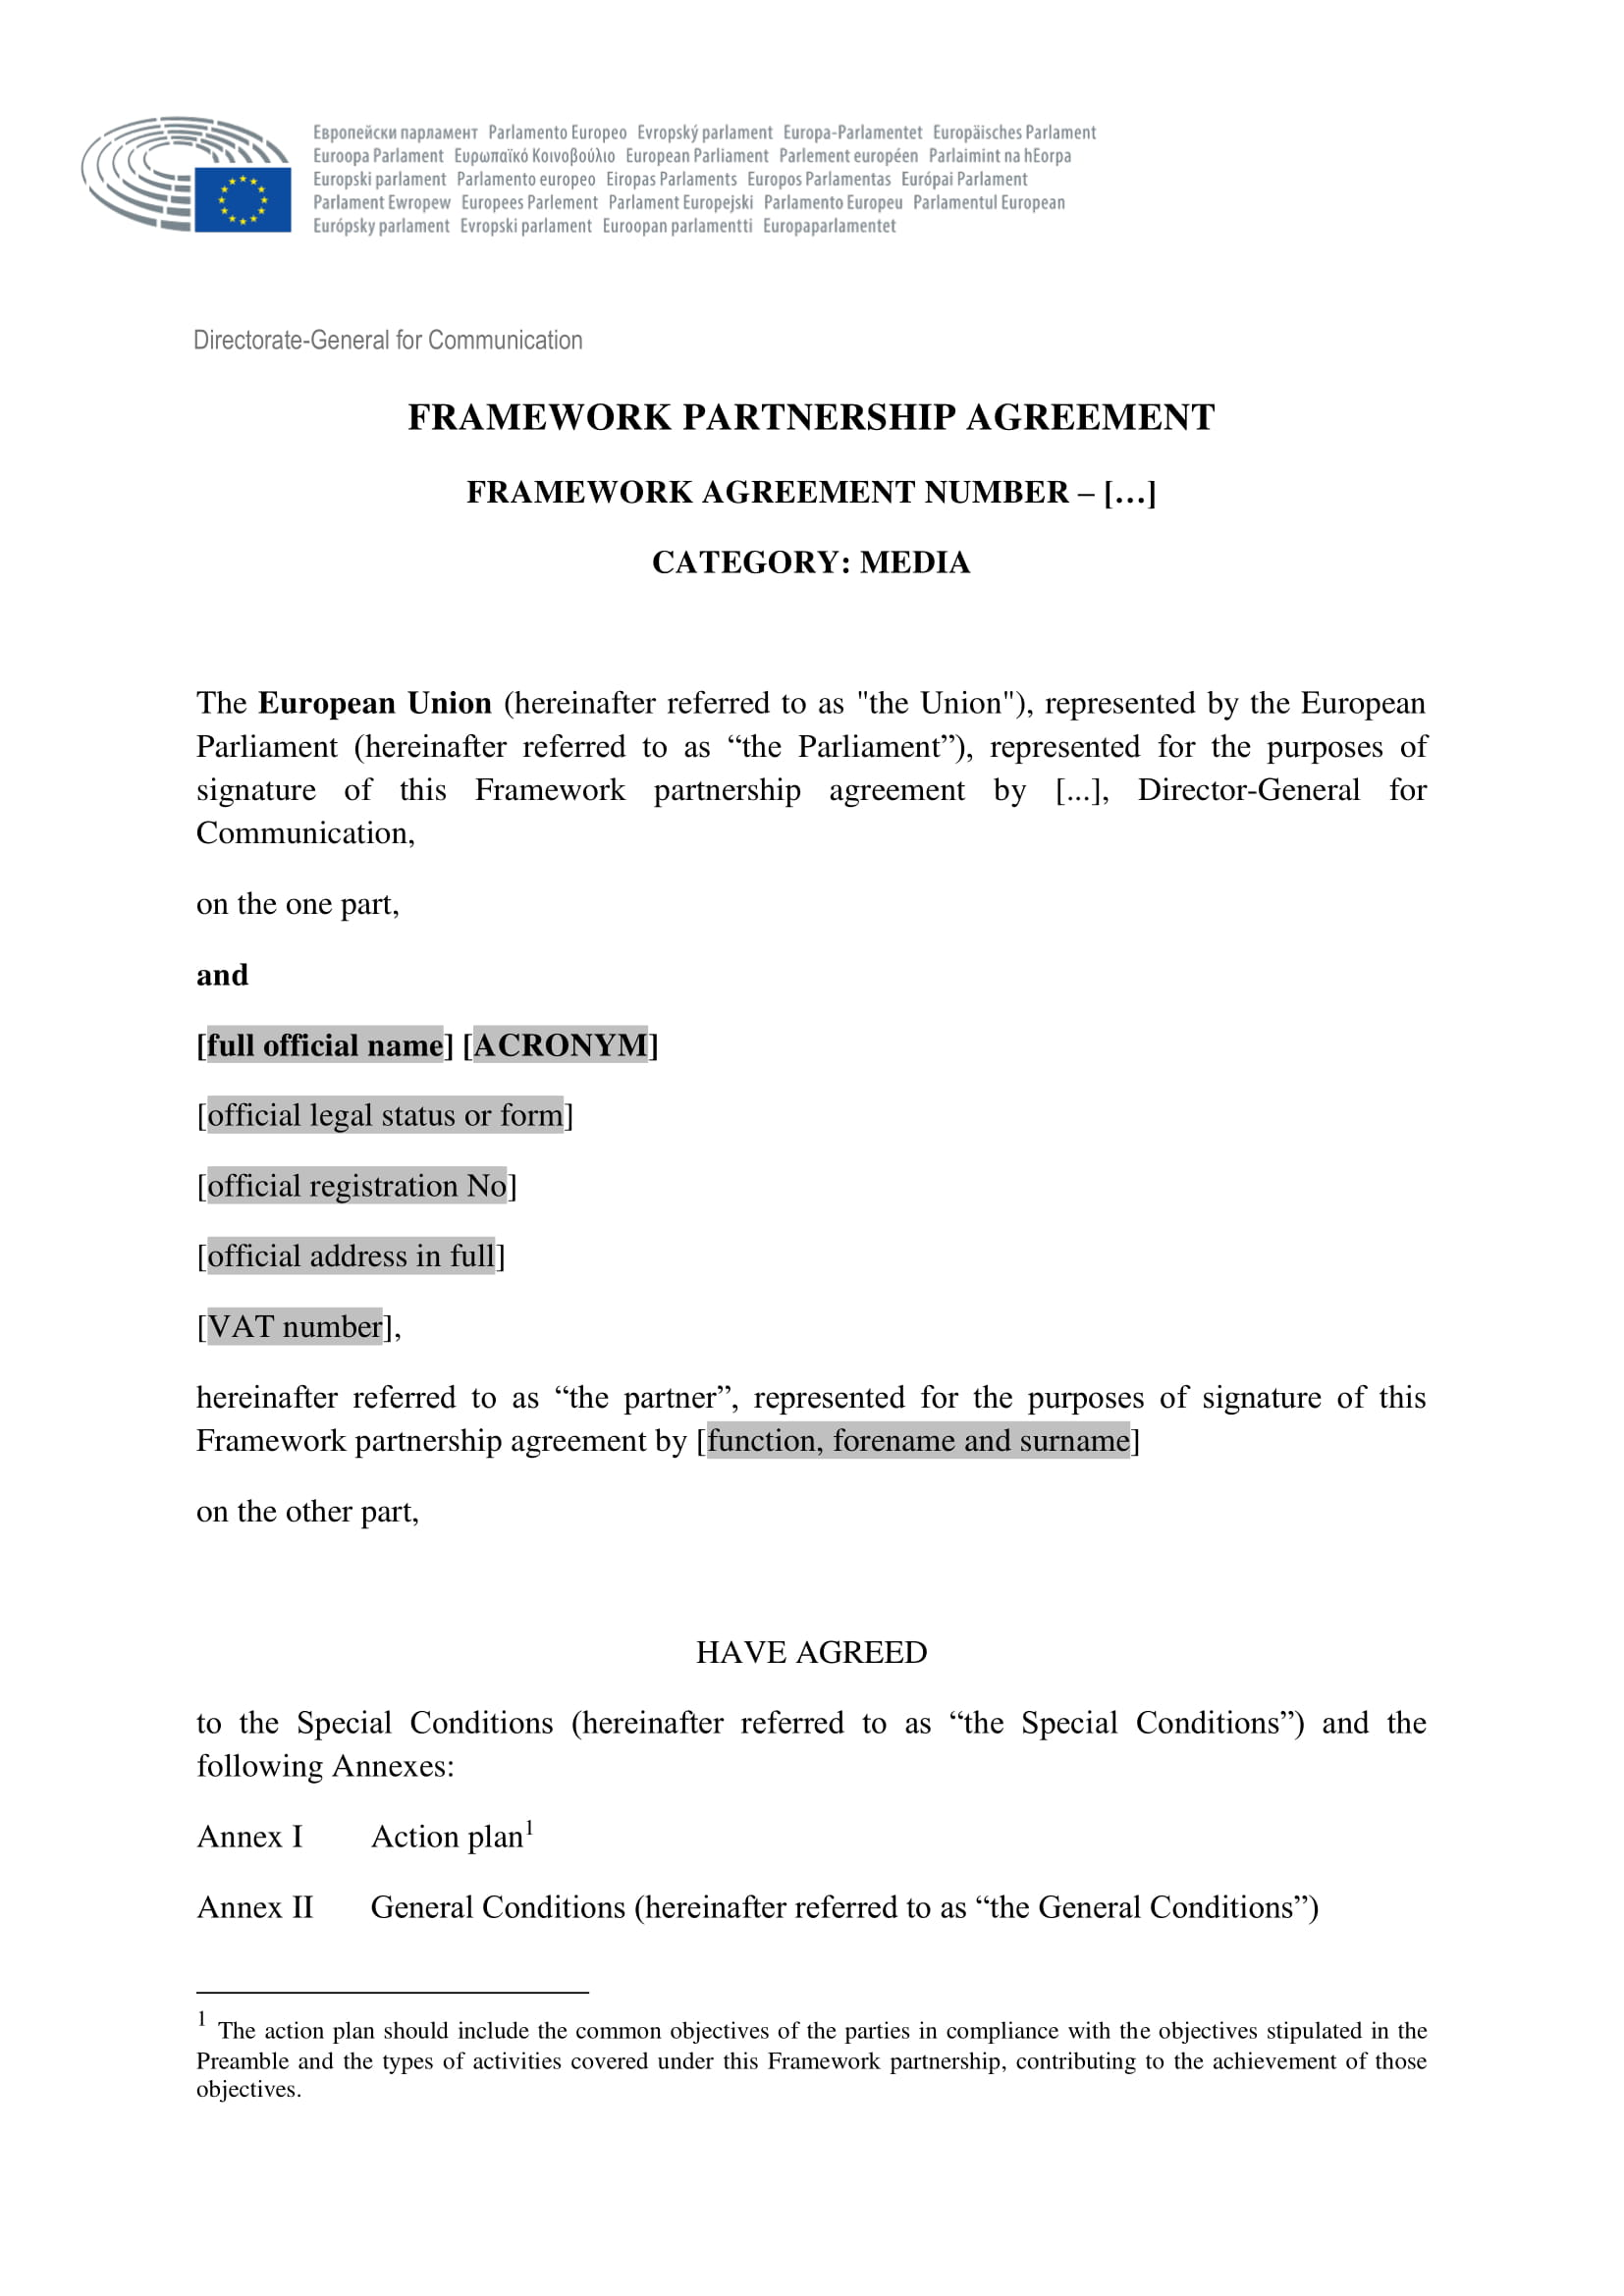 framework partnership agreement example1